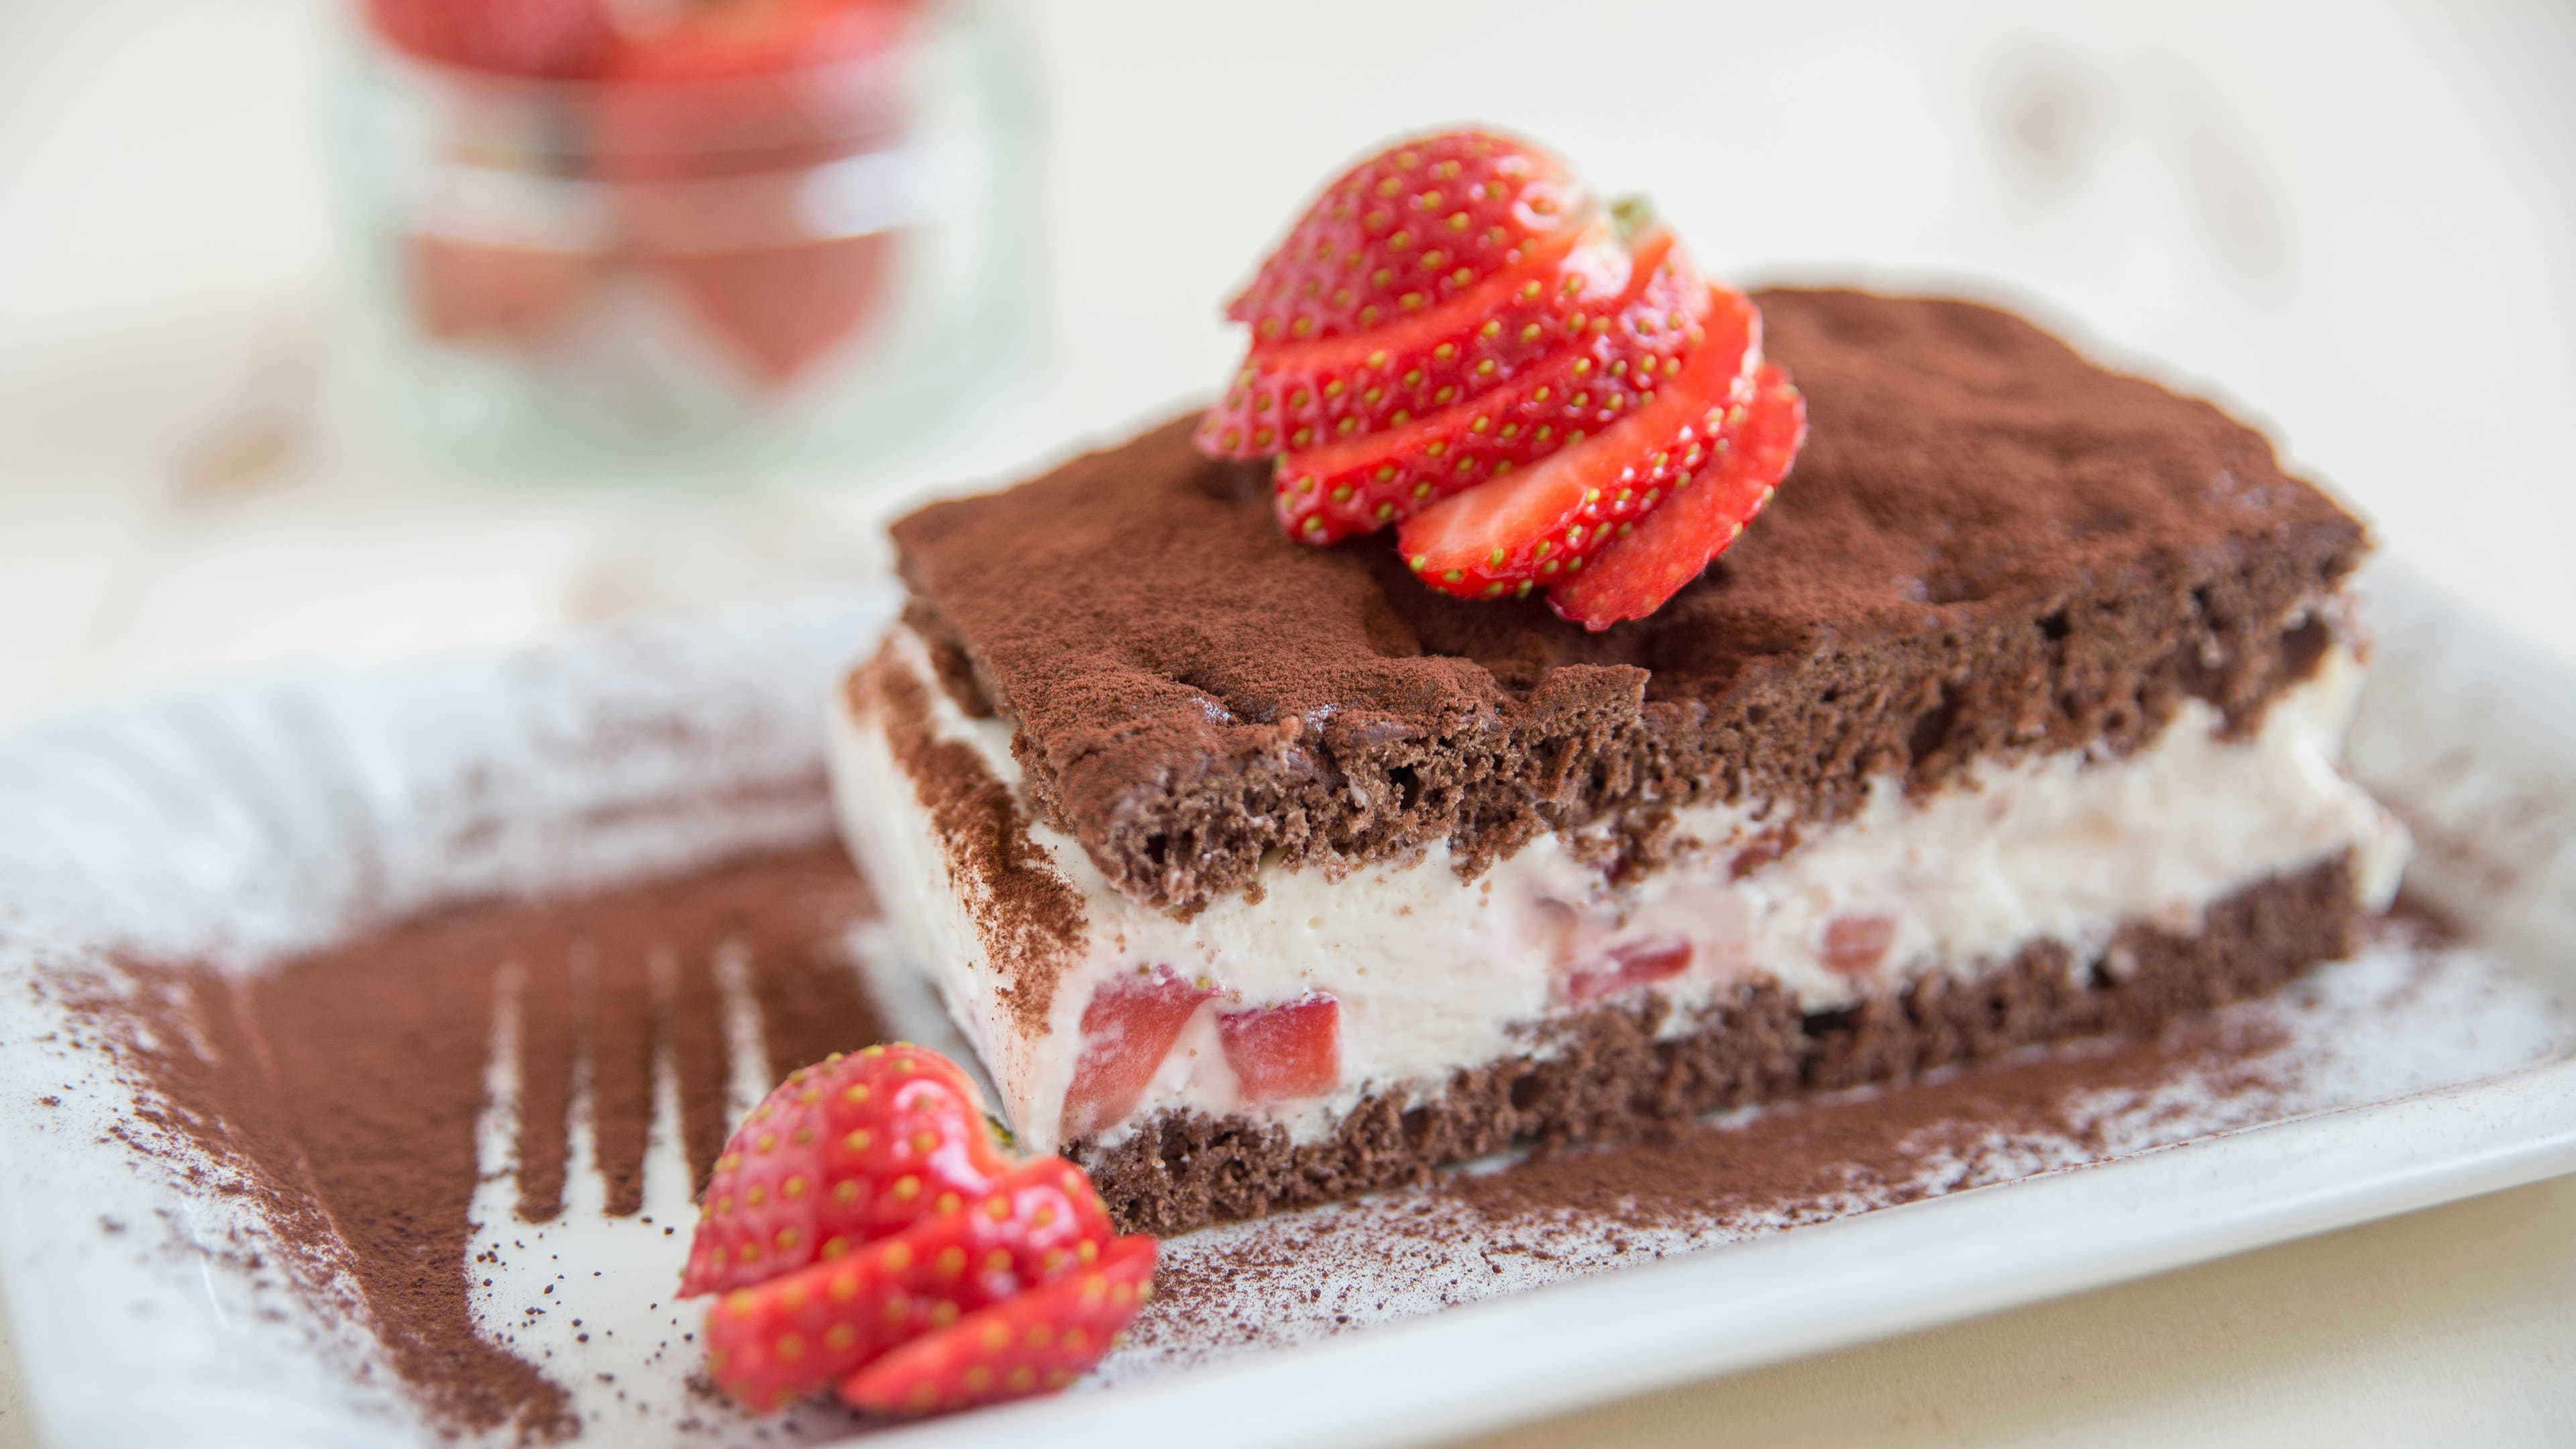 chocolate short cake with sliced strawberry uhd 4k wallpaper